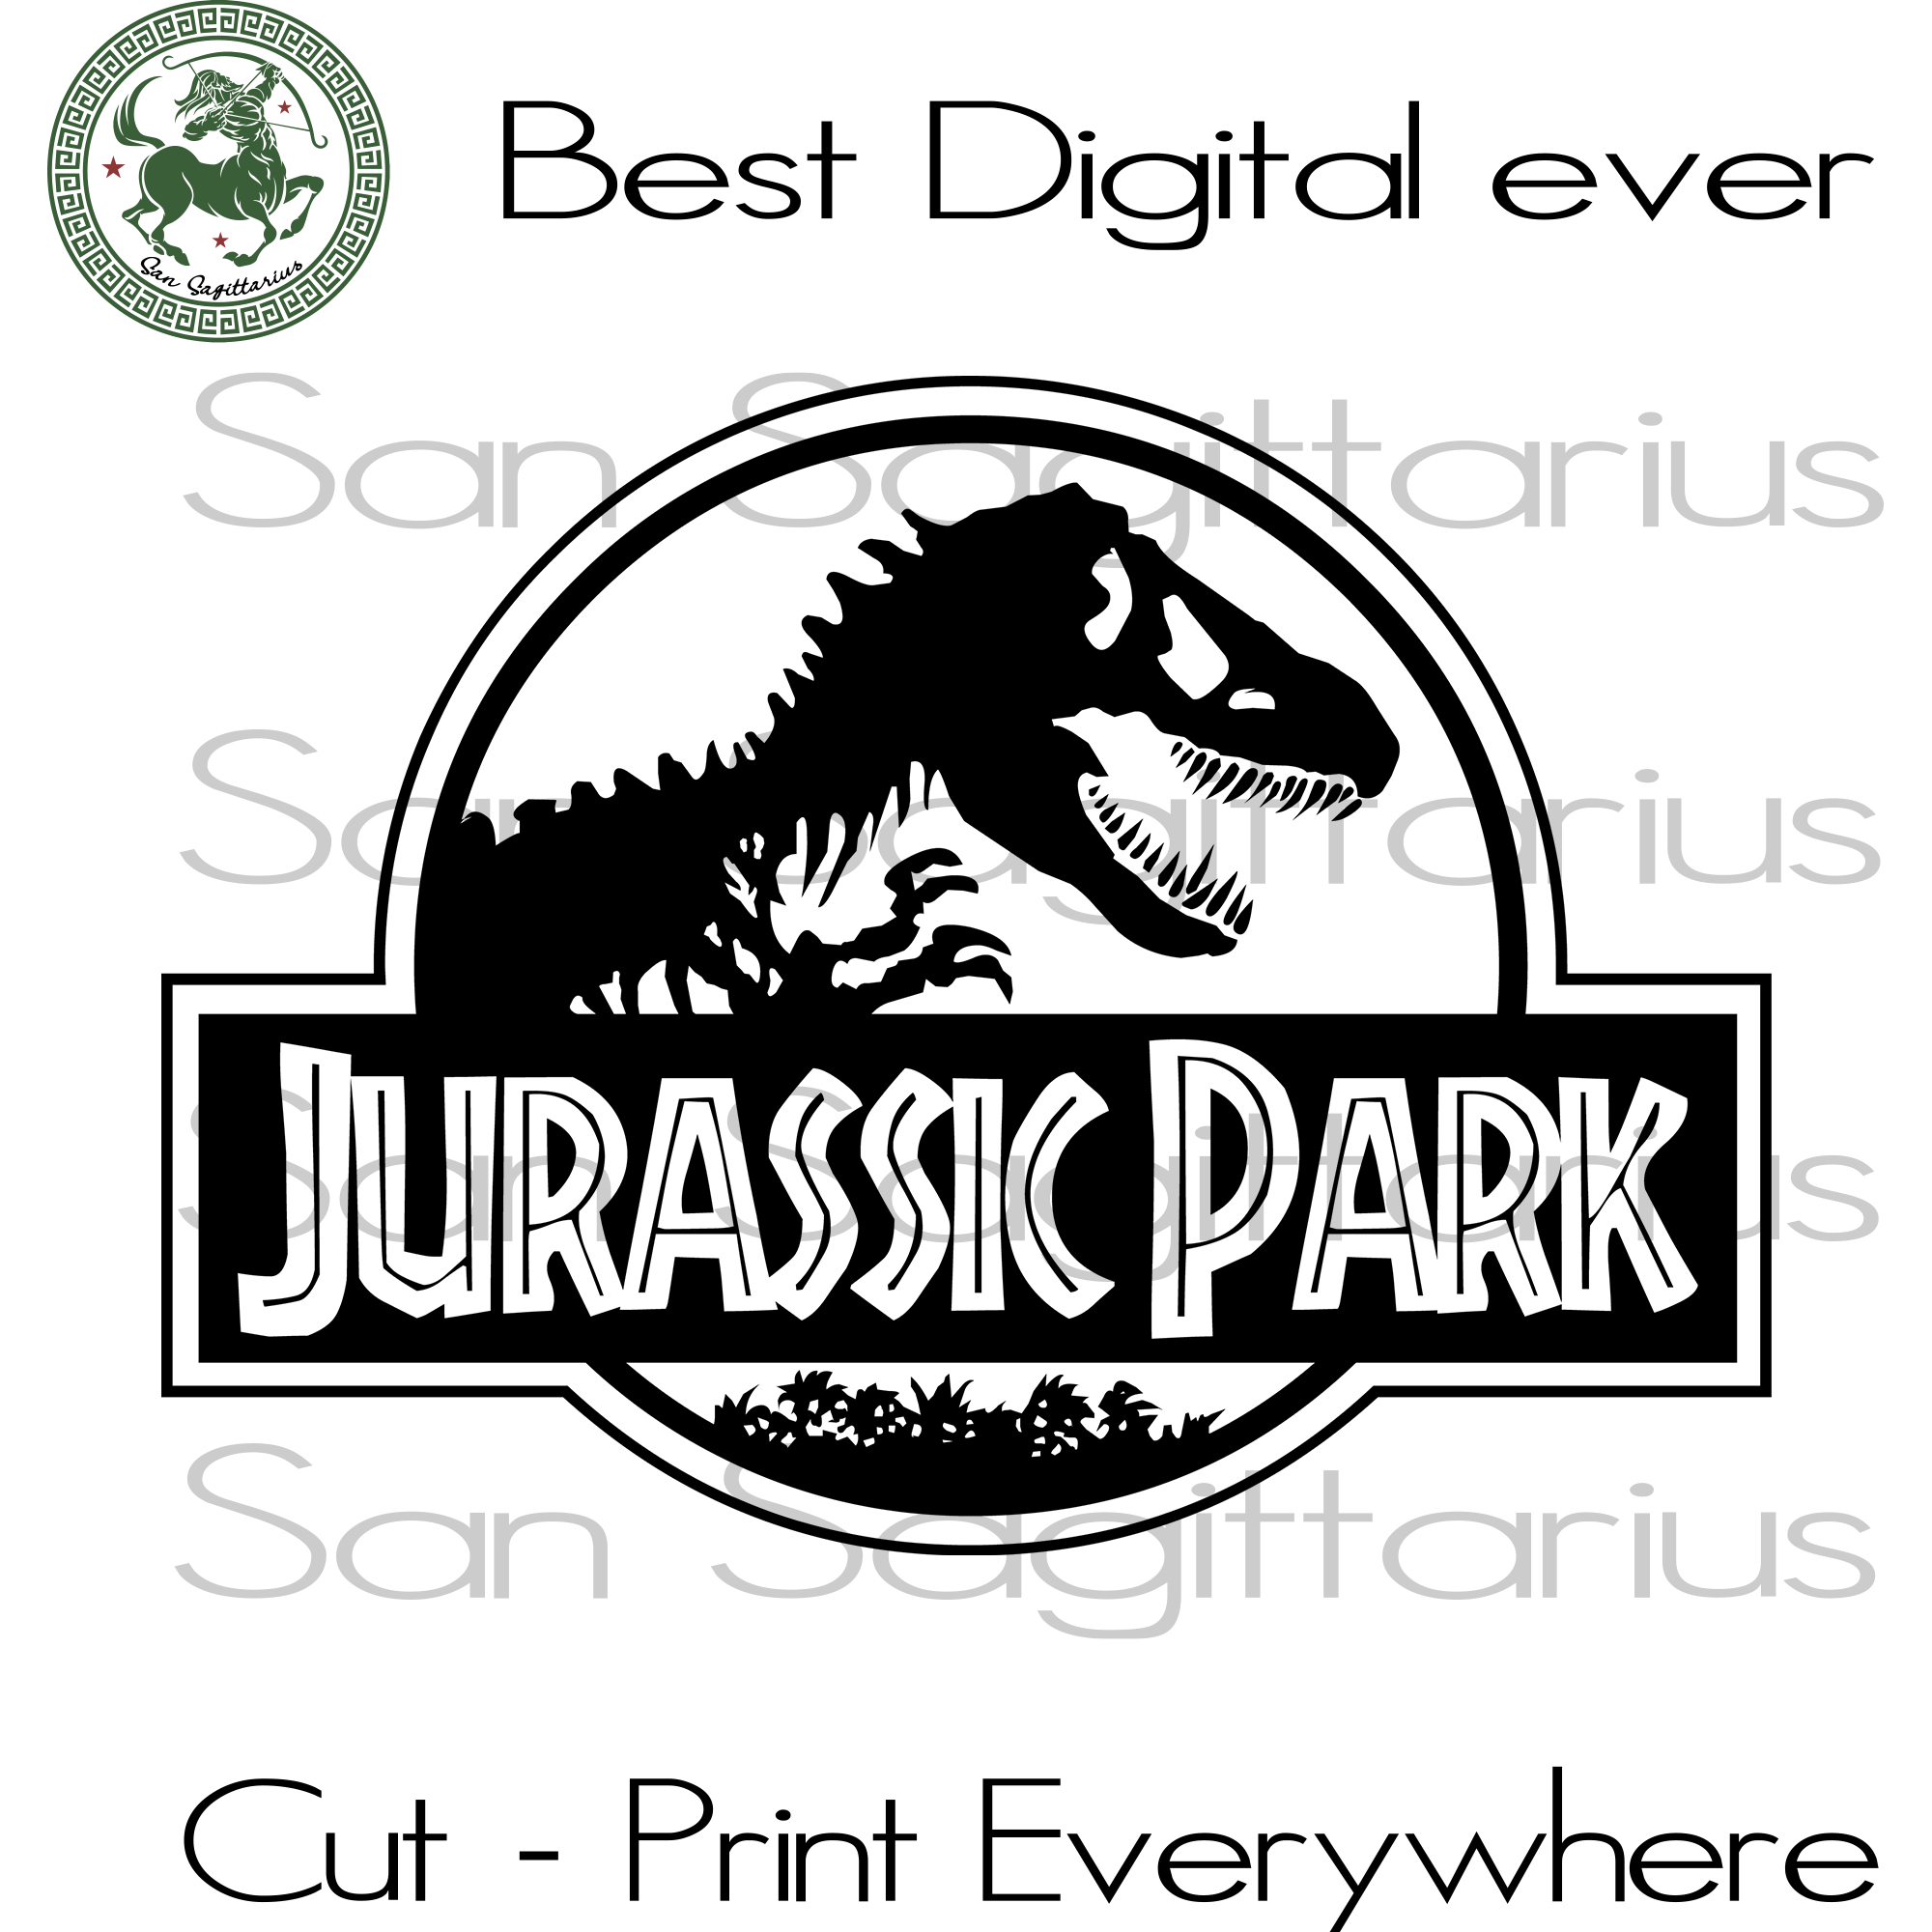 Jurassic Park Silhouette Best Gift For Kids SVG Files For Cricut Silhouette Instant Download | San Sagittarius